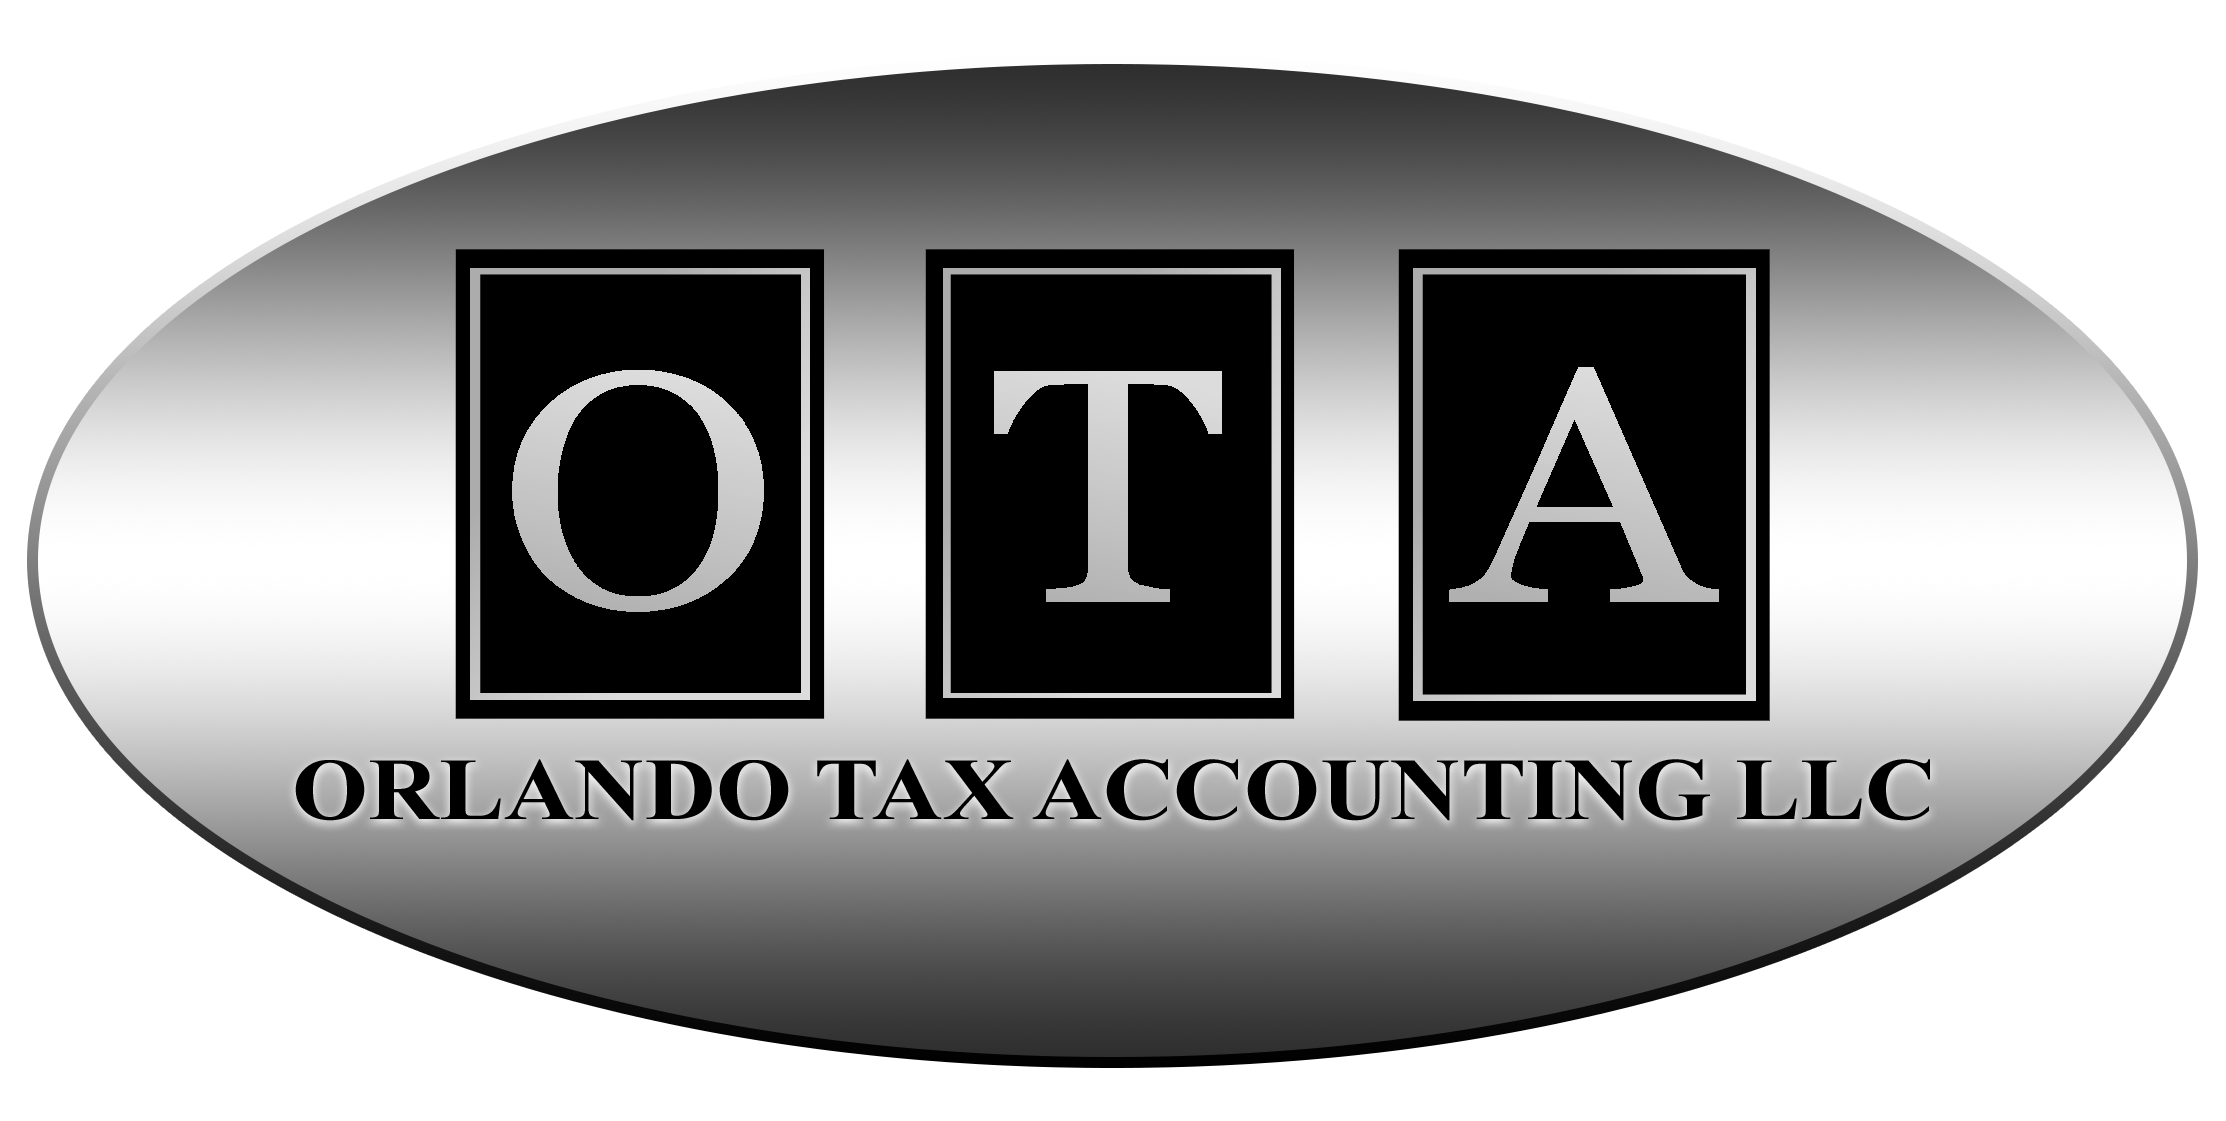 Orlando Tax Accounting